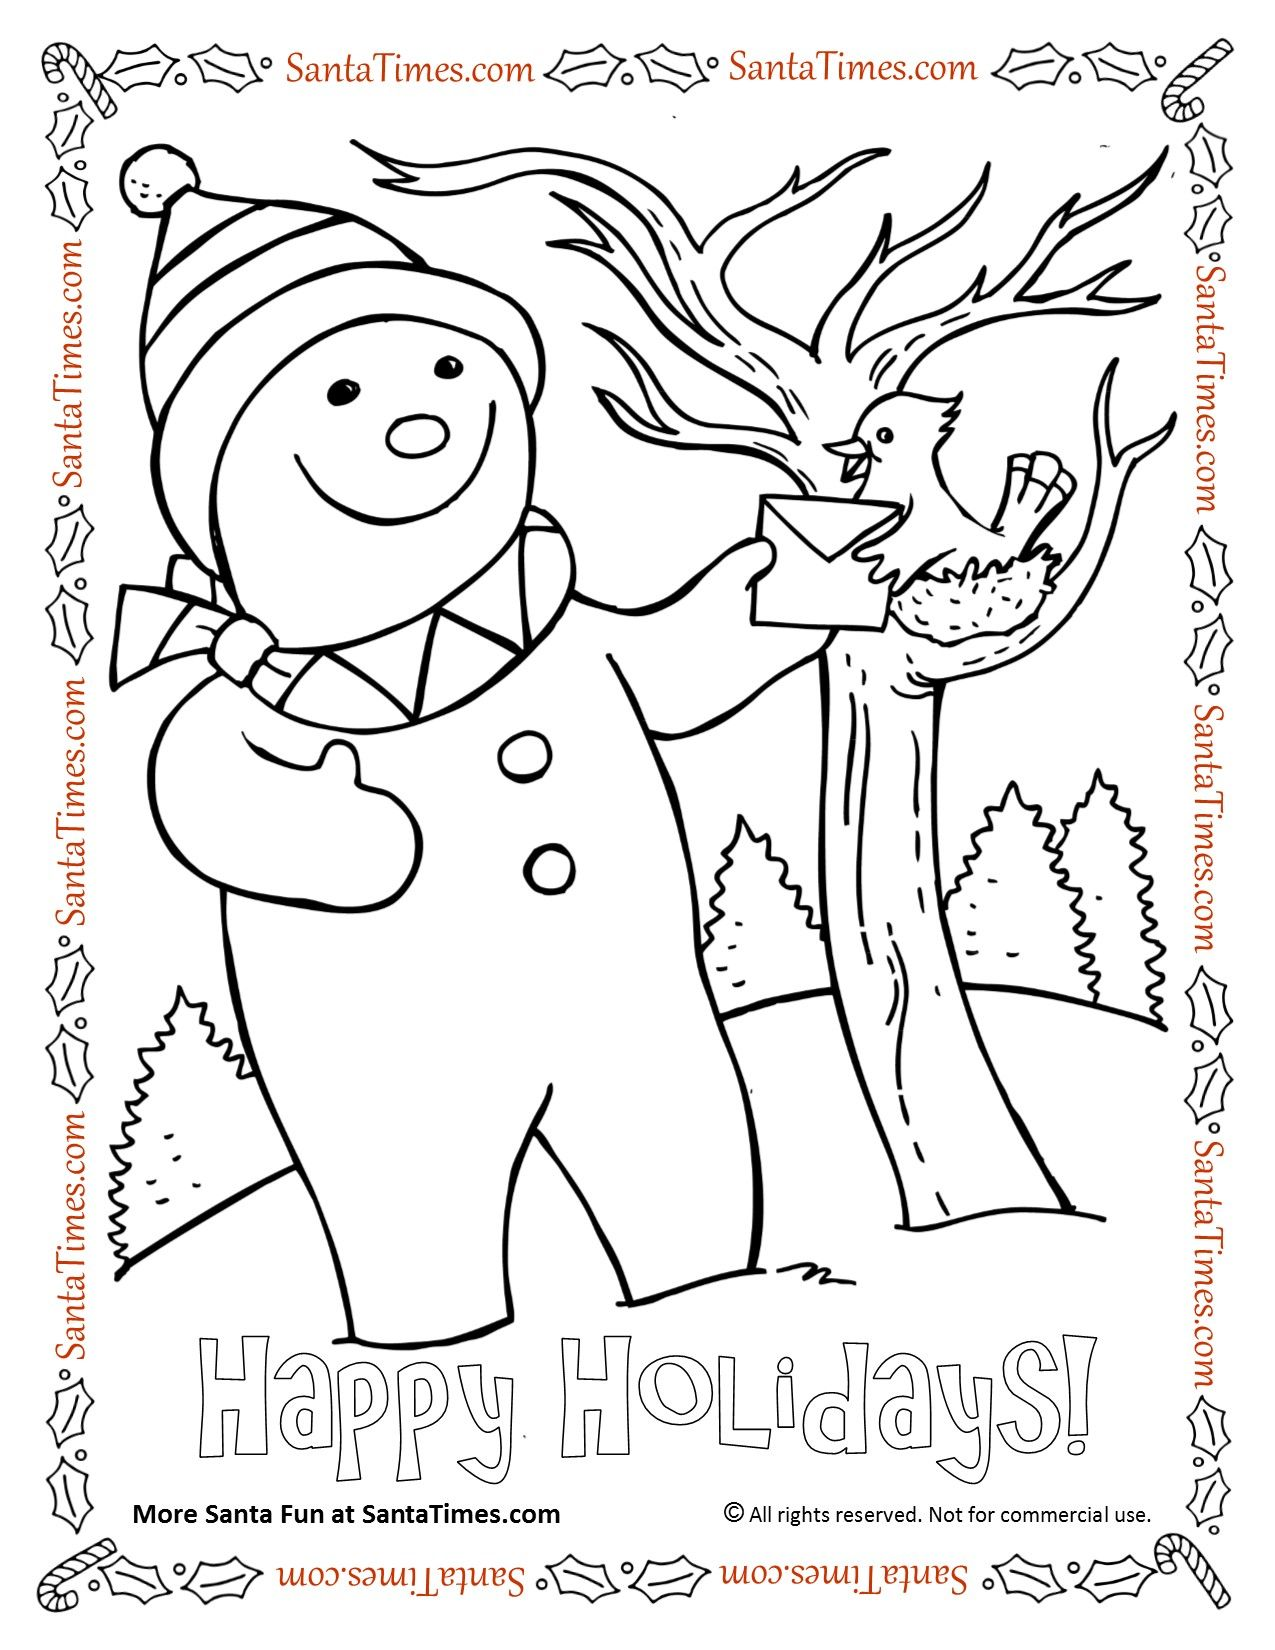 happy holidays snowman and bird coloring page more holiday coloring fun at wwwsantatimes